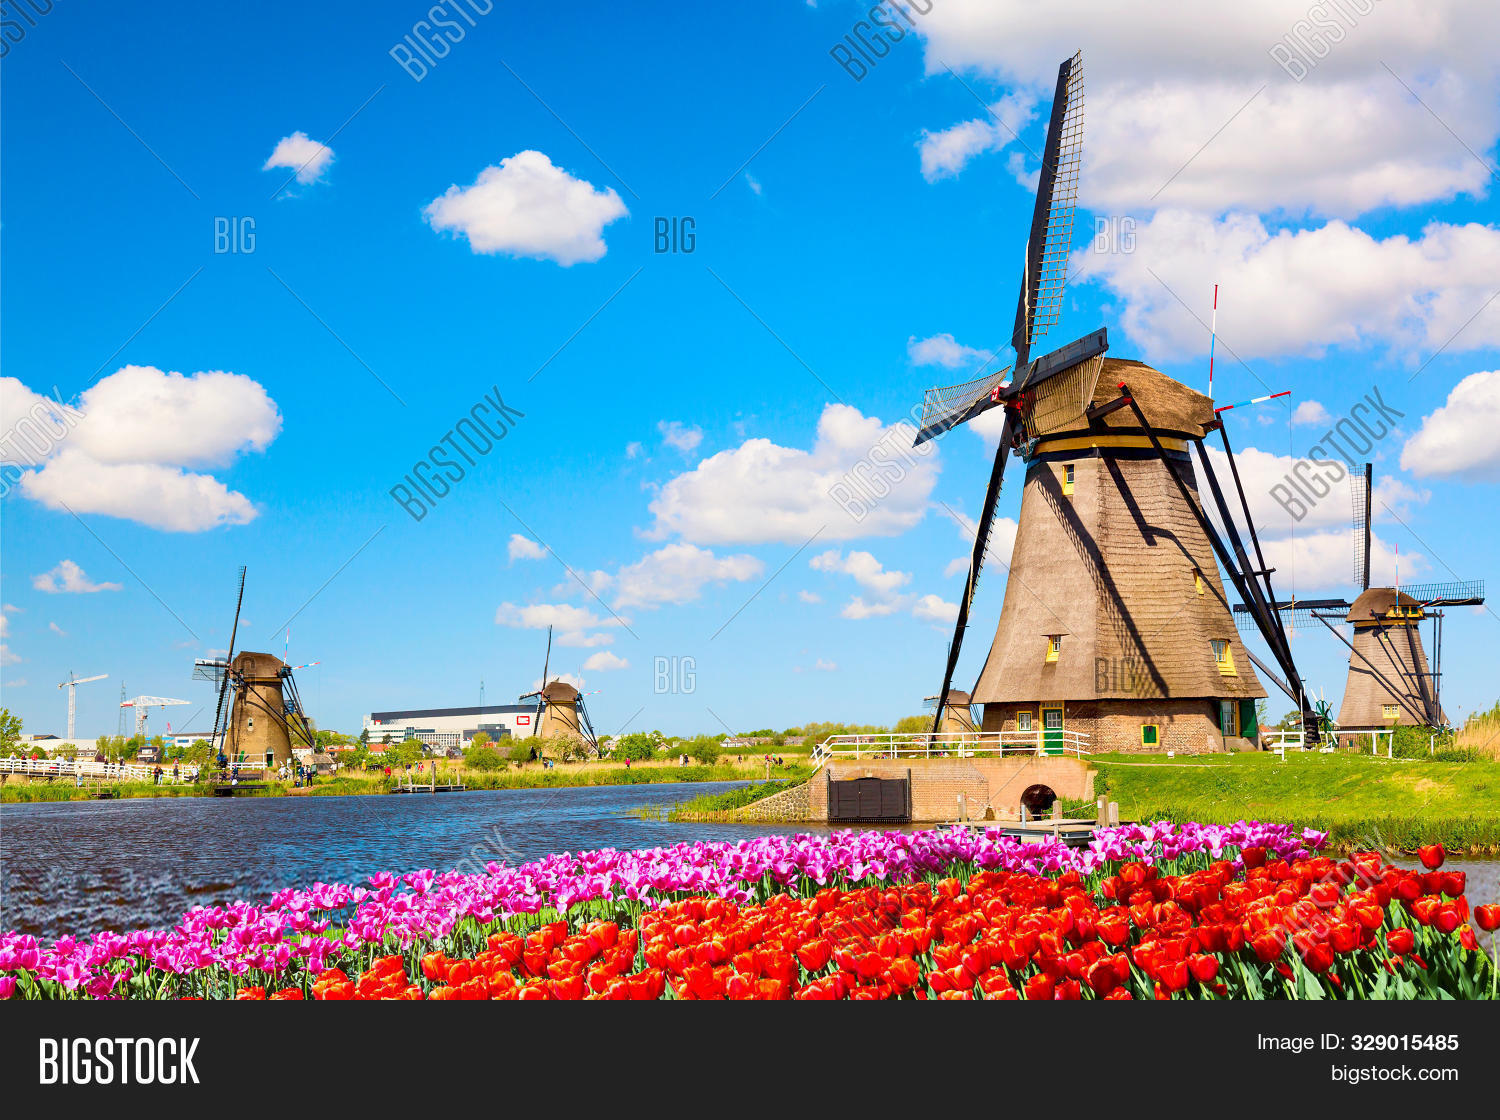 Colorful Spring Landscape In Netherlands, Europe. Famous Windmills In Kinderdijk Village With A Tuli